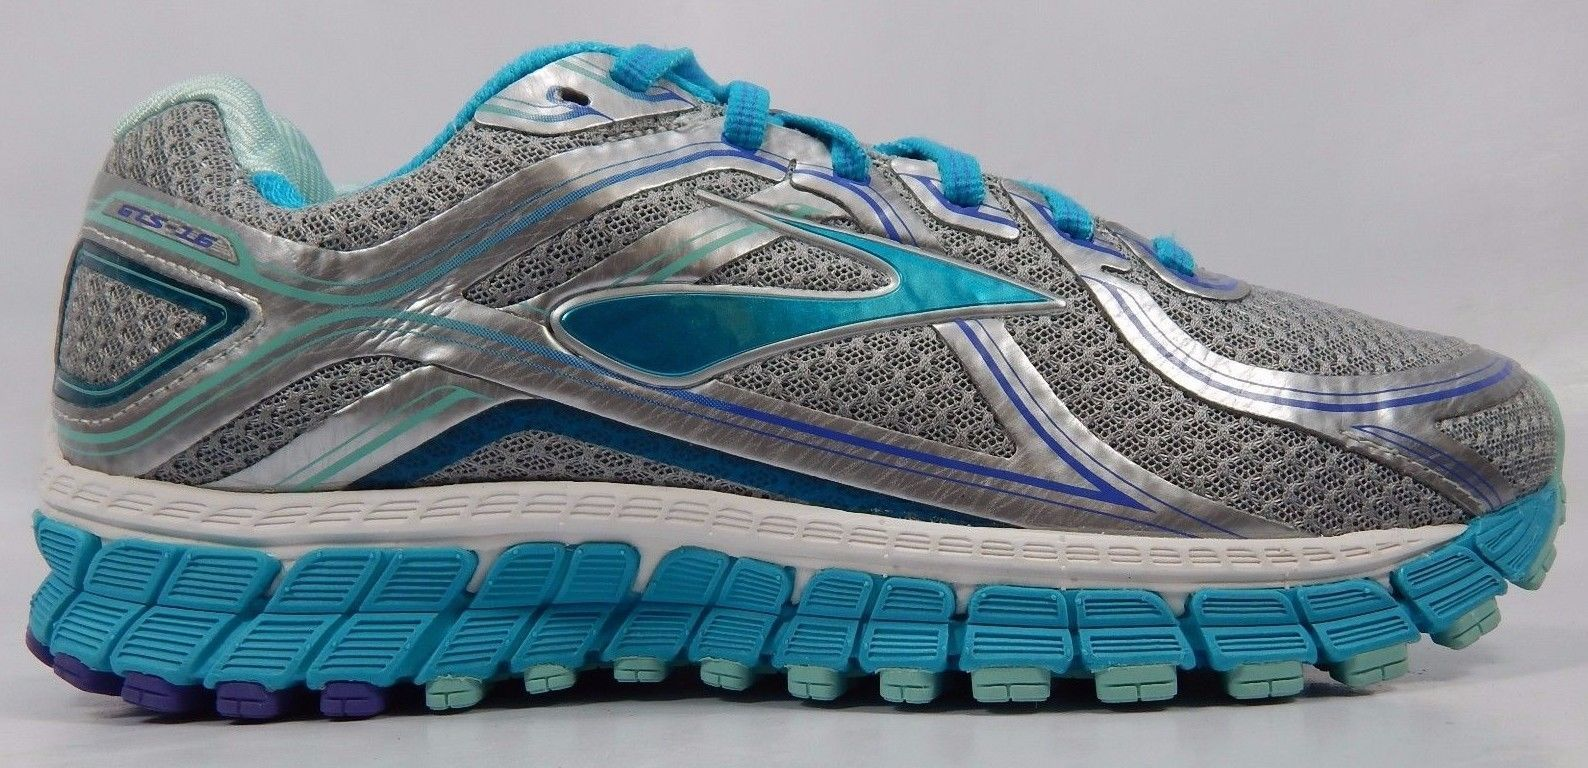 Brooks GTS 16 Women's Running Shoes Size US 8 M (B) EU 39 1202031B170 Silver